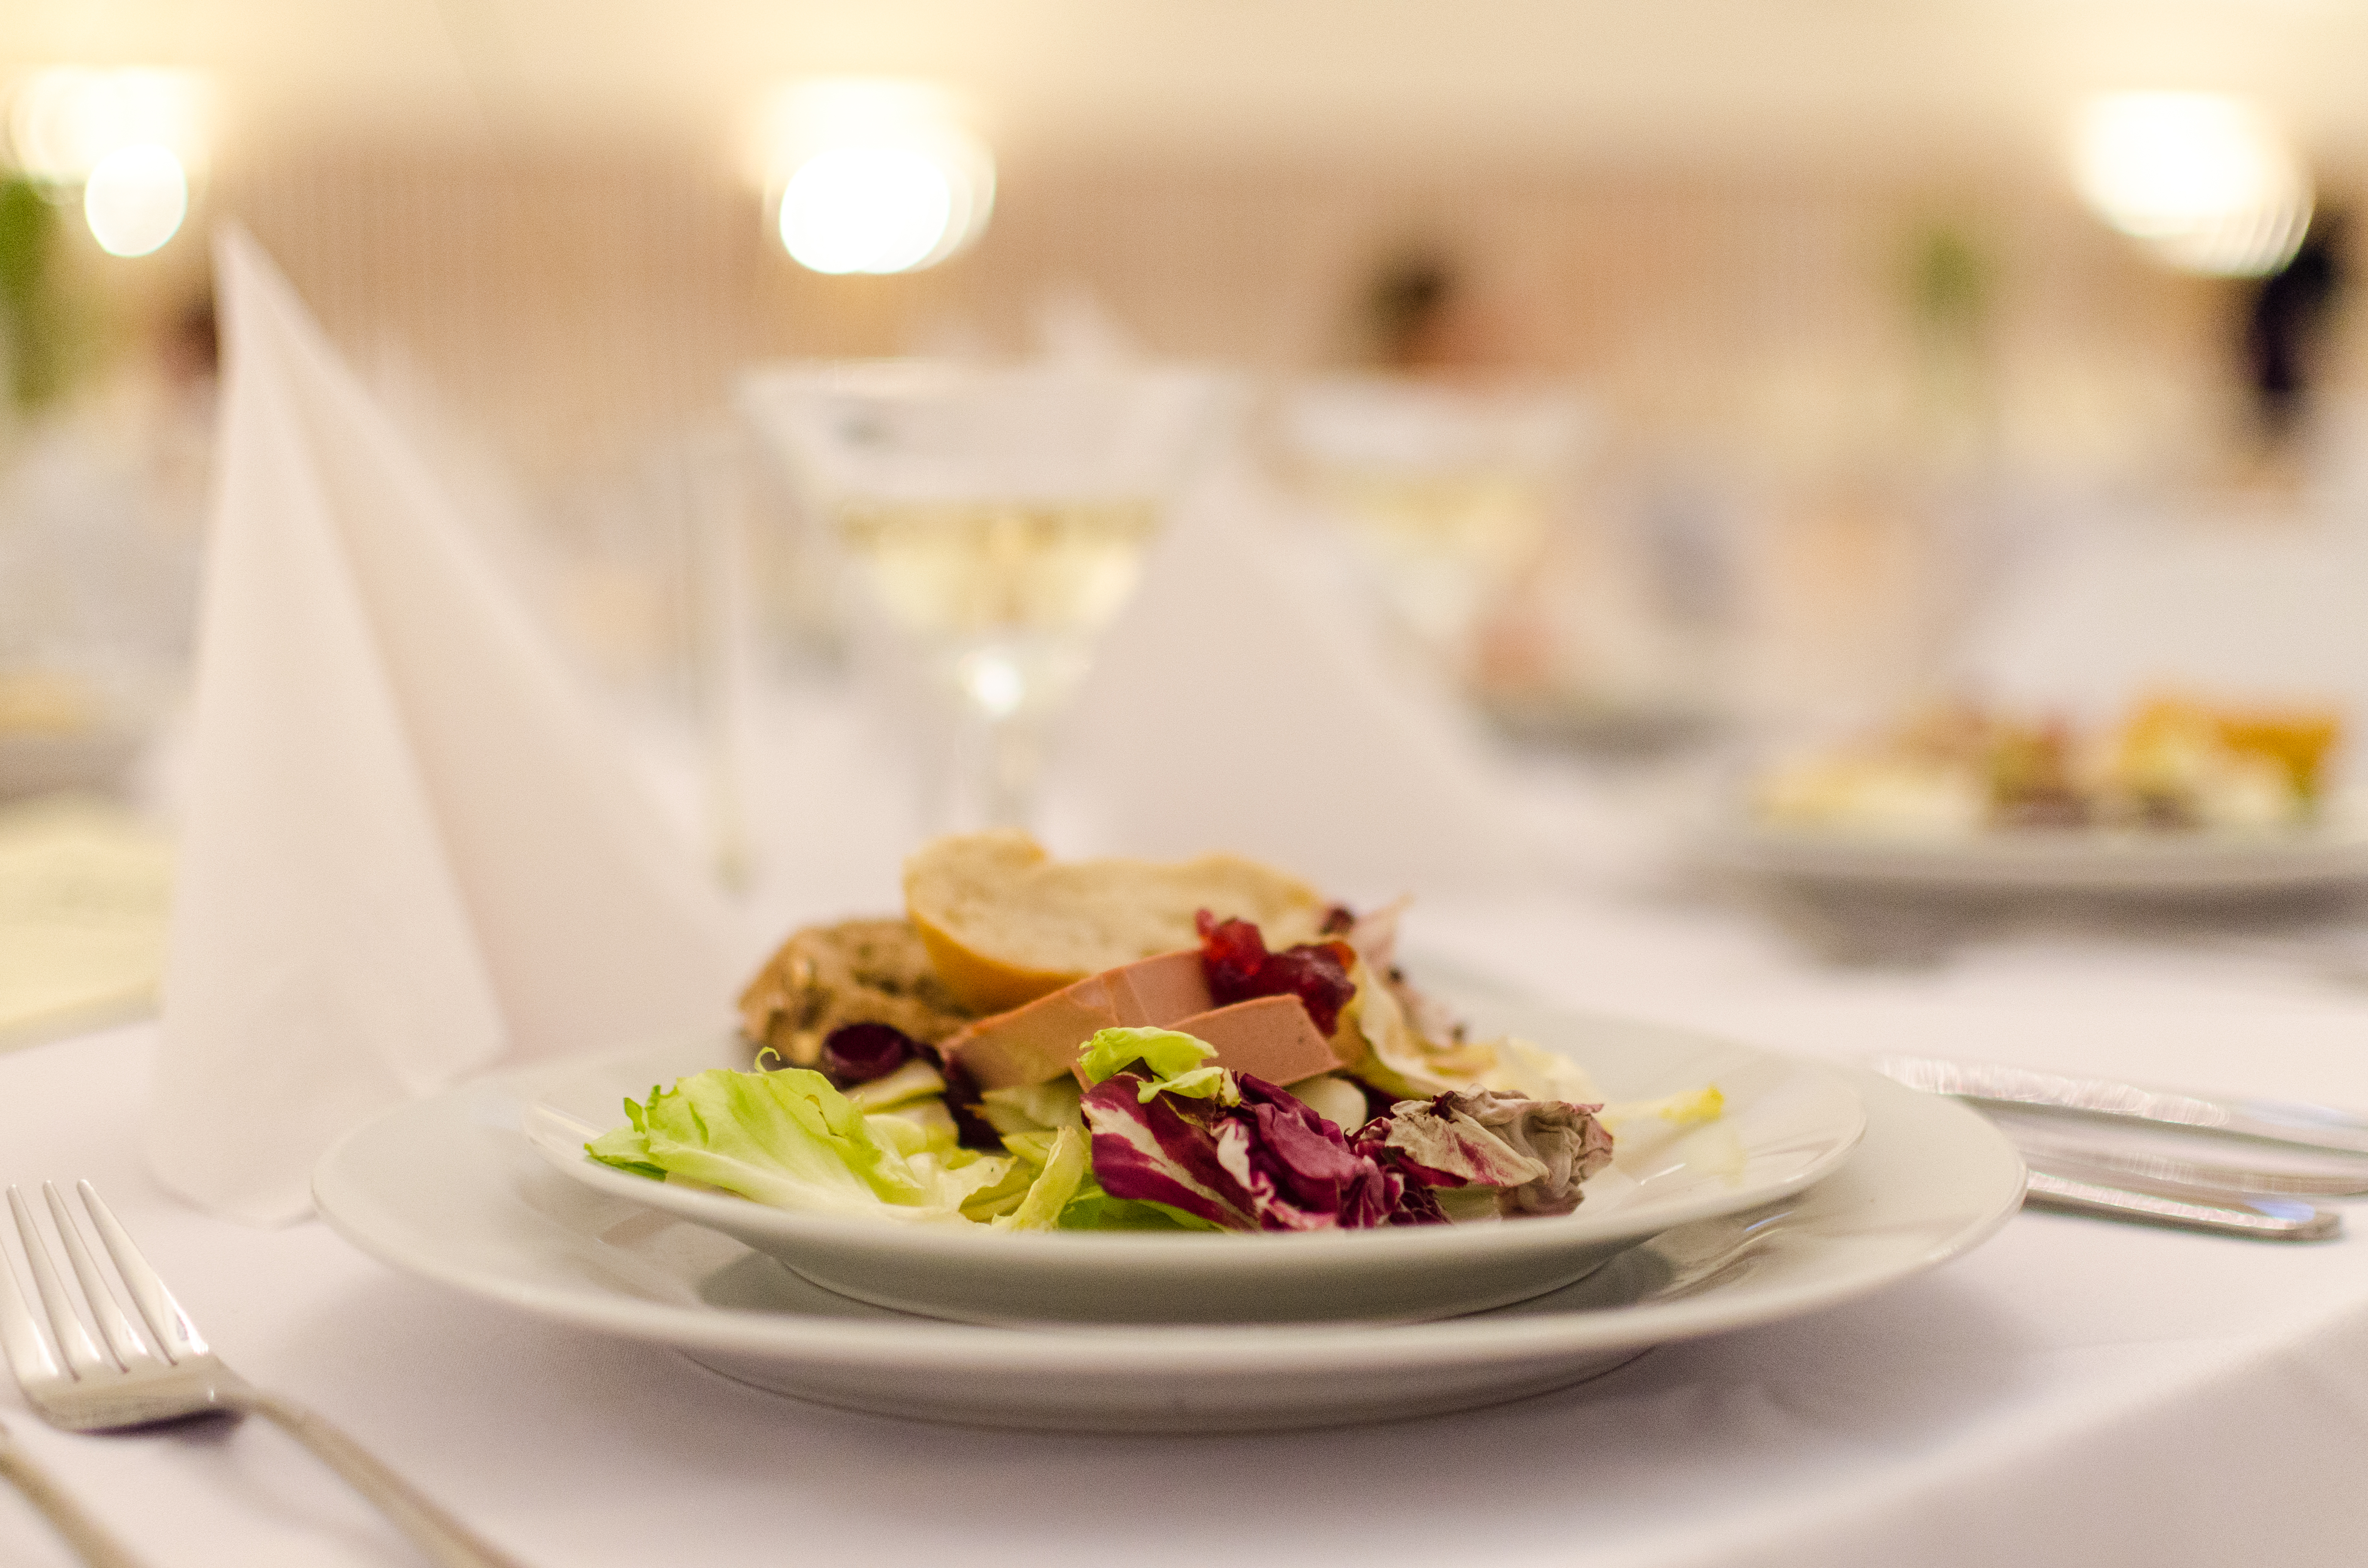 Food catering on wedding day | Caterease